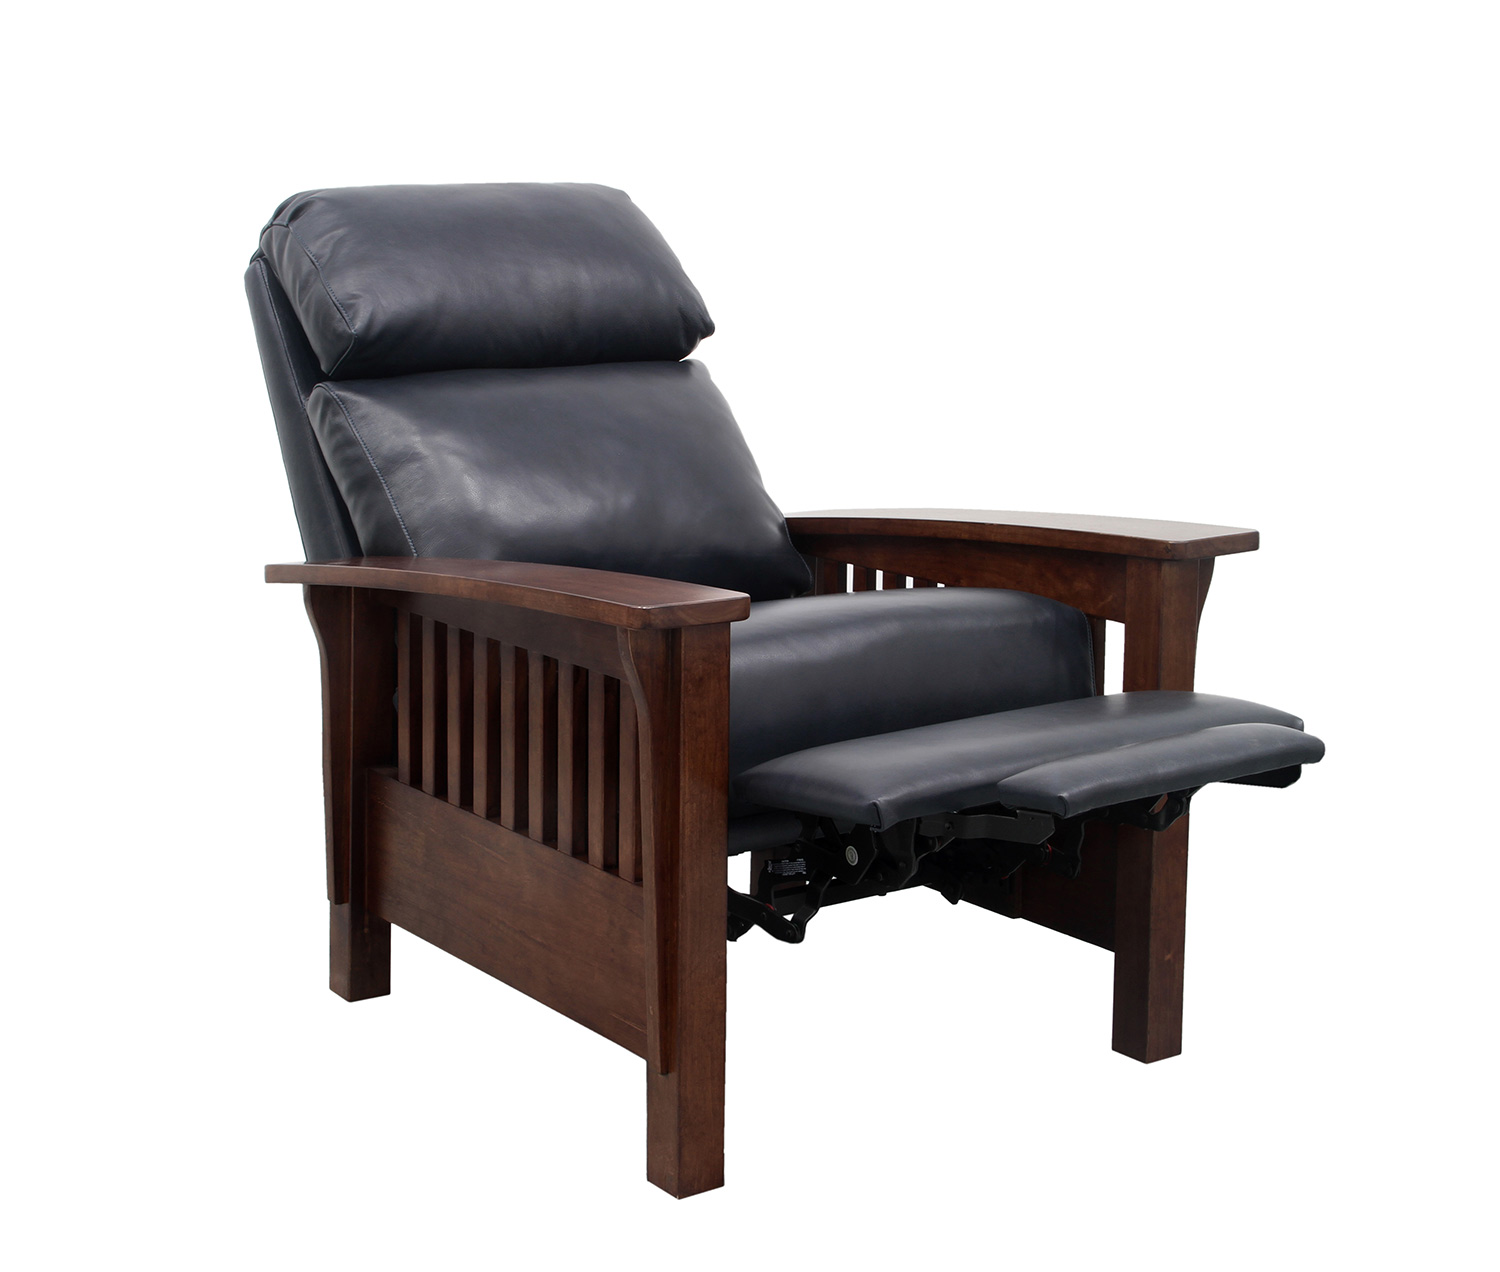 Barcalounger Mission Recliner Chair - Shoreham Blue/All Leather